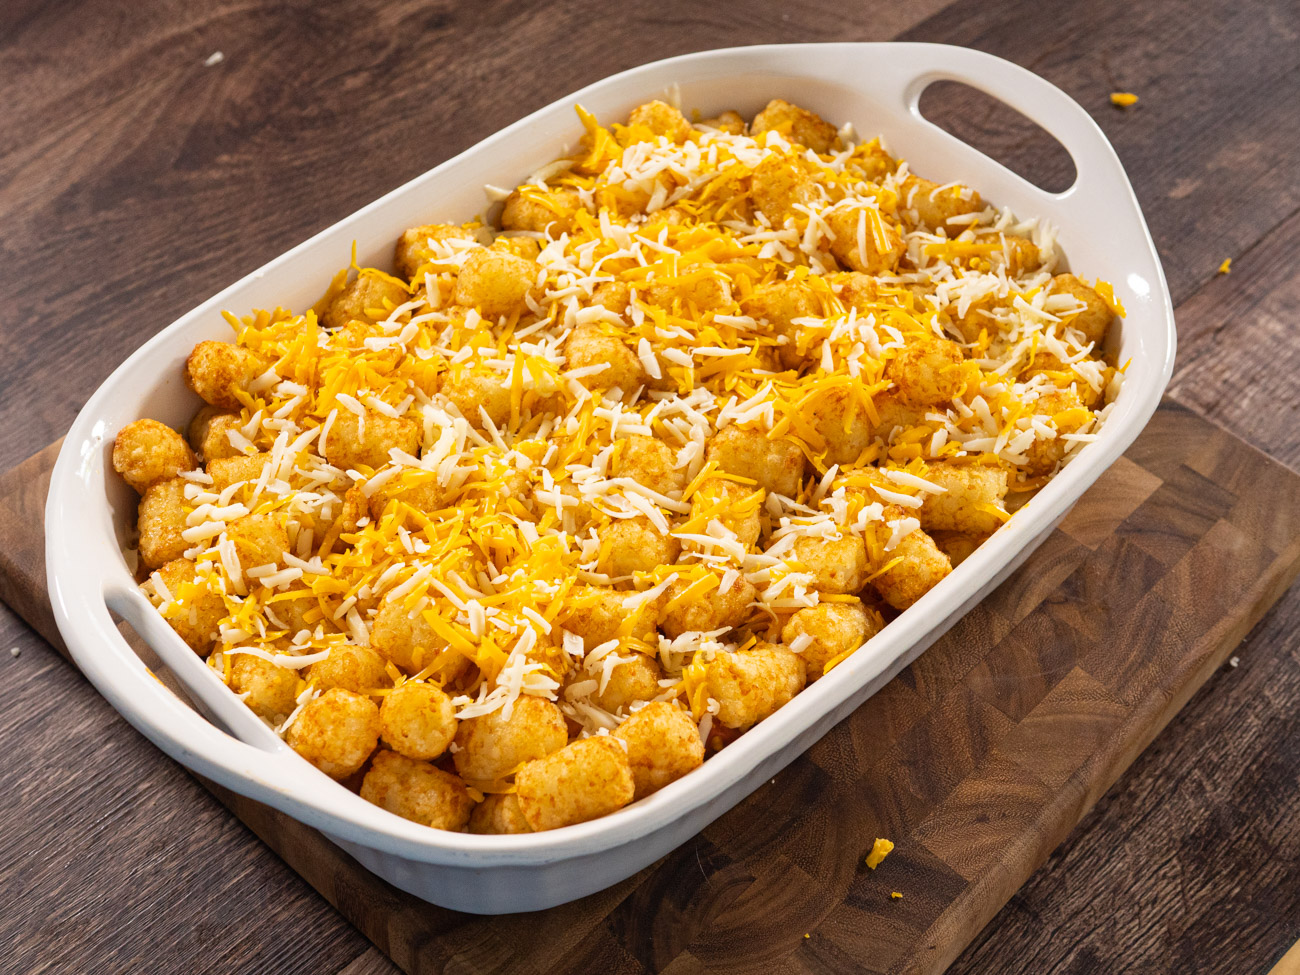 Spread the tater tots on top of the cheese layer and bake for 30 minutes.